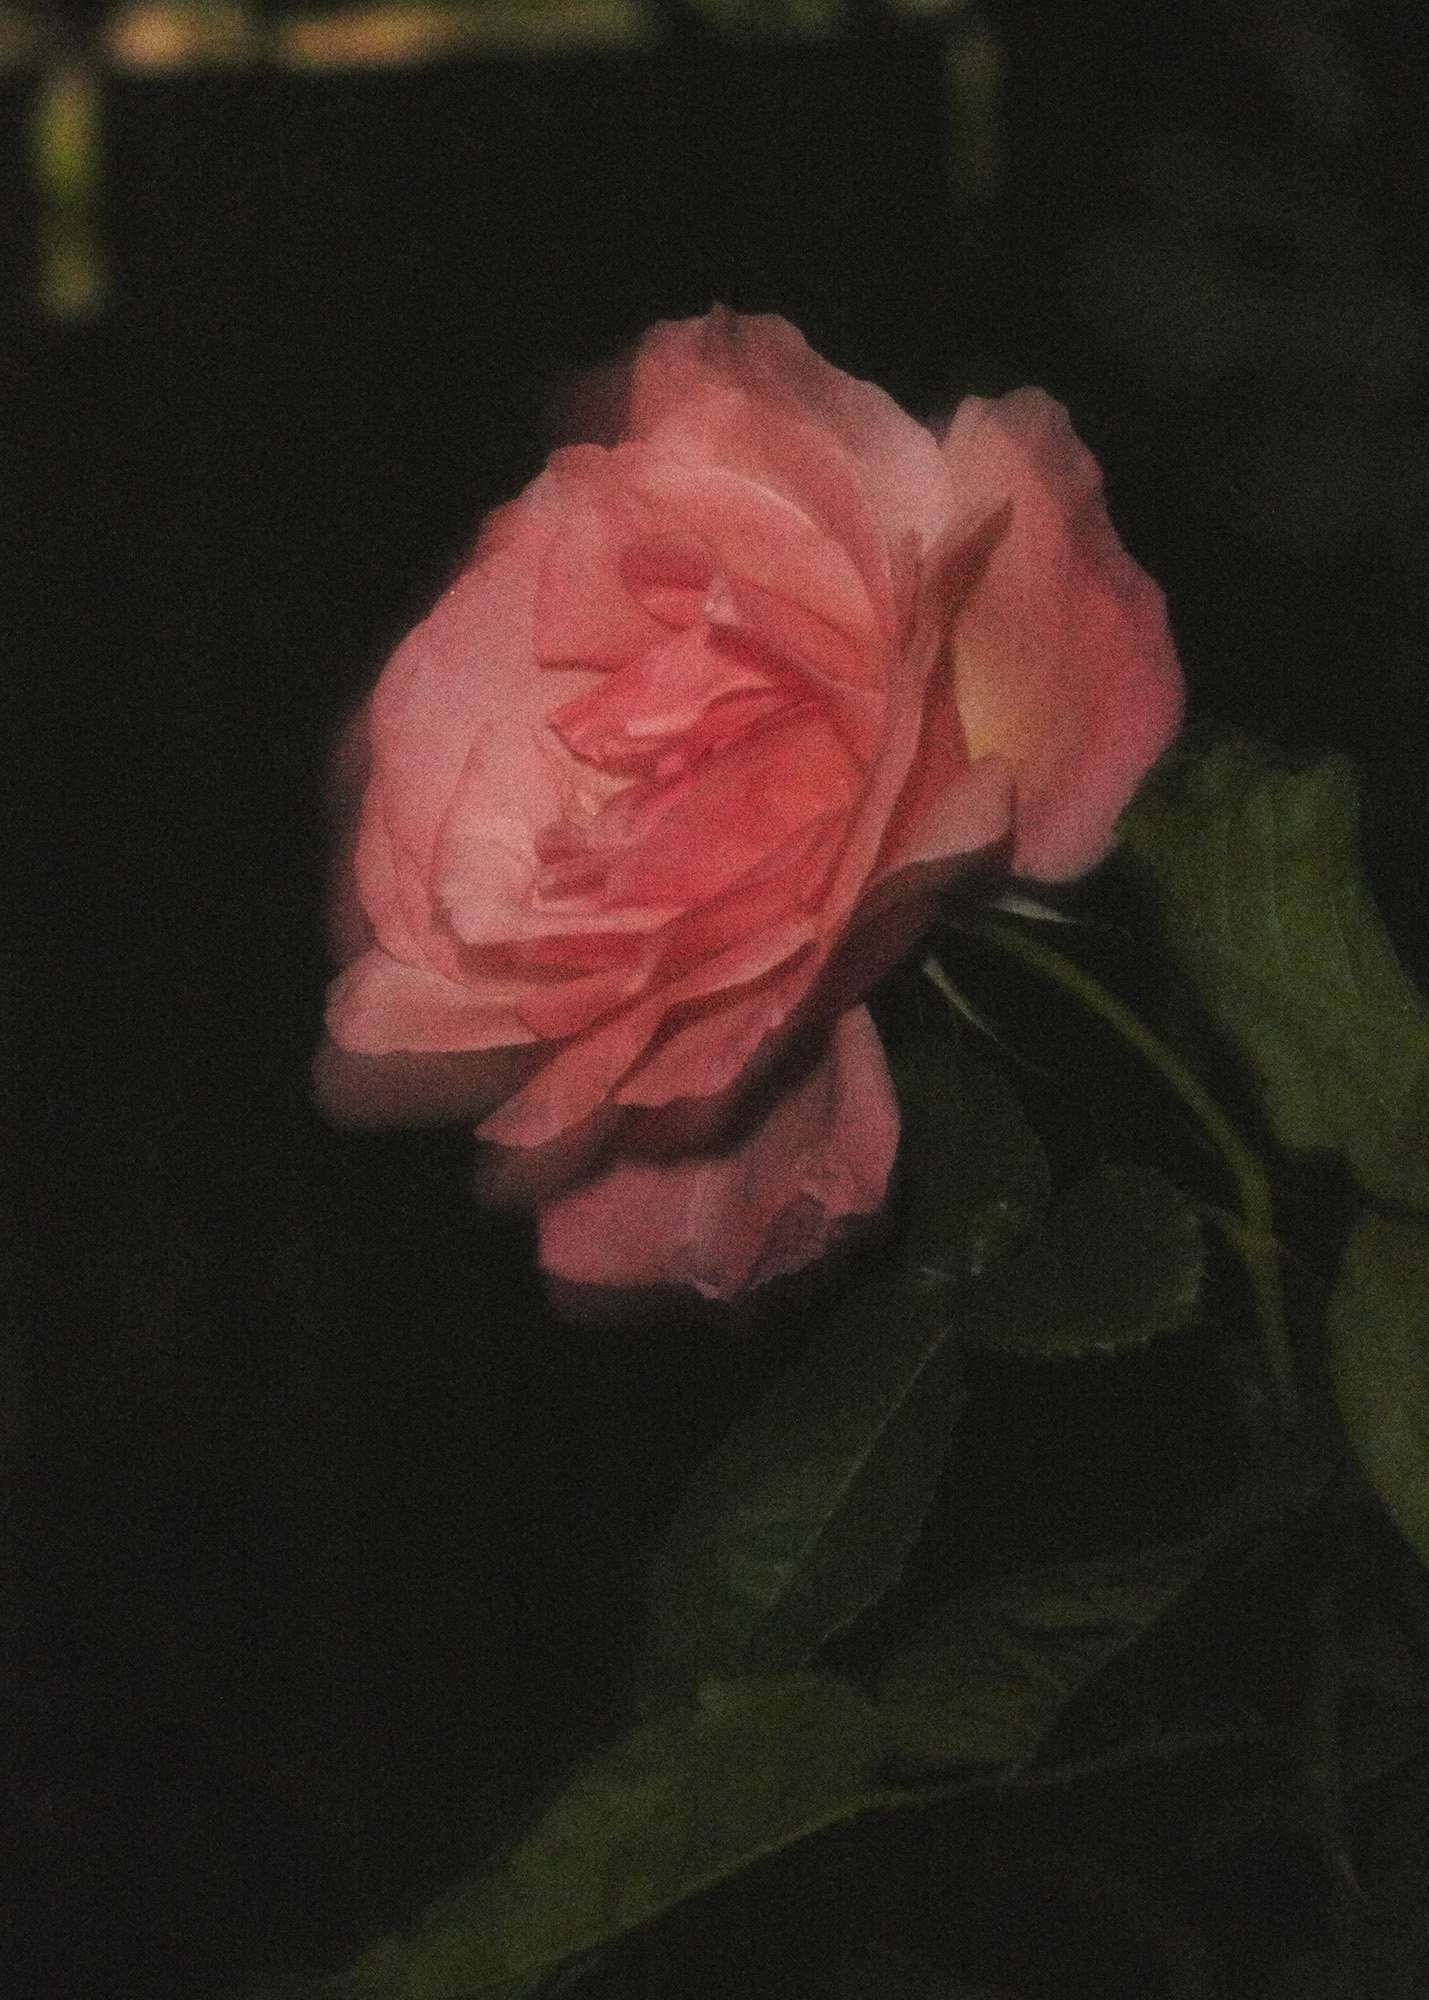 Rosa #1, 2020 C-Type print, 11 x 14 inches Edition of 5